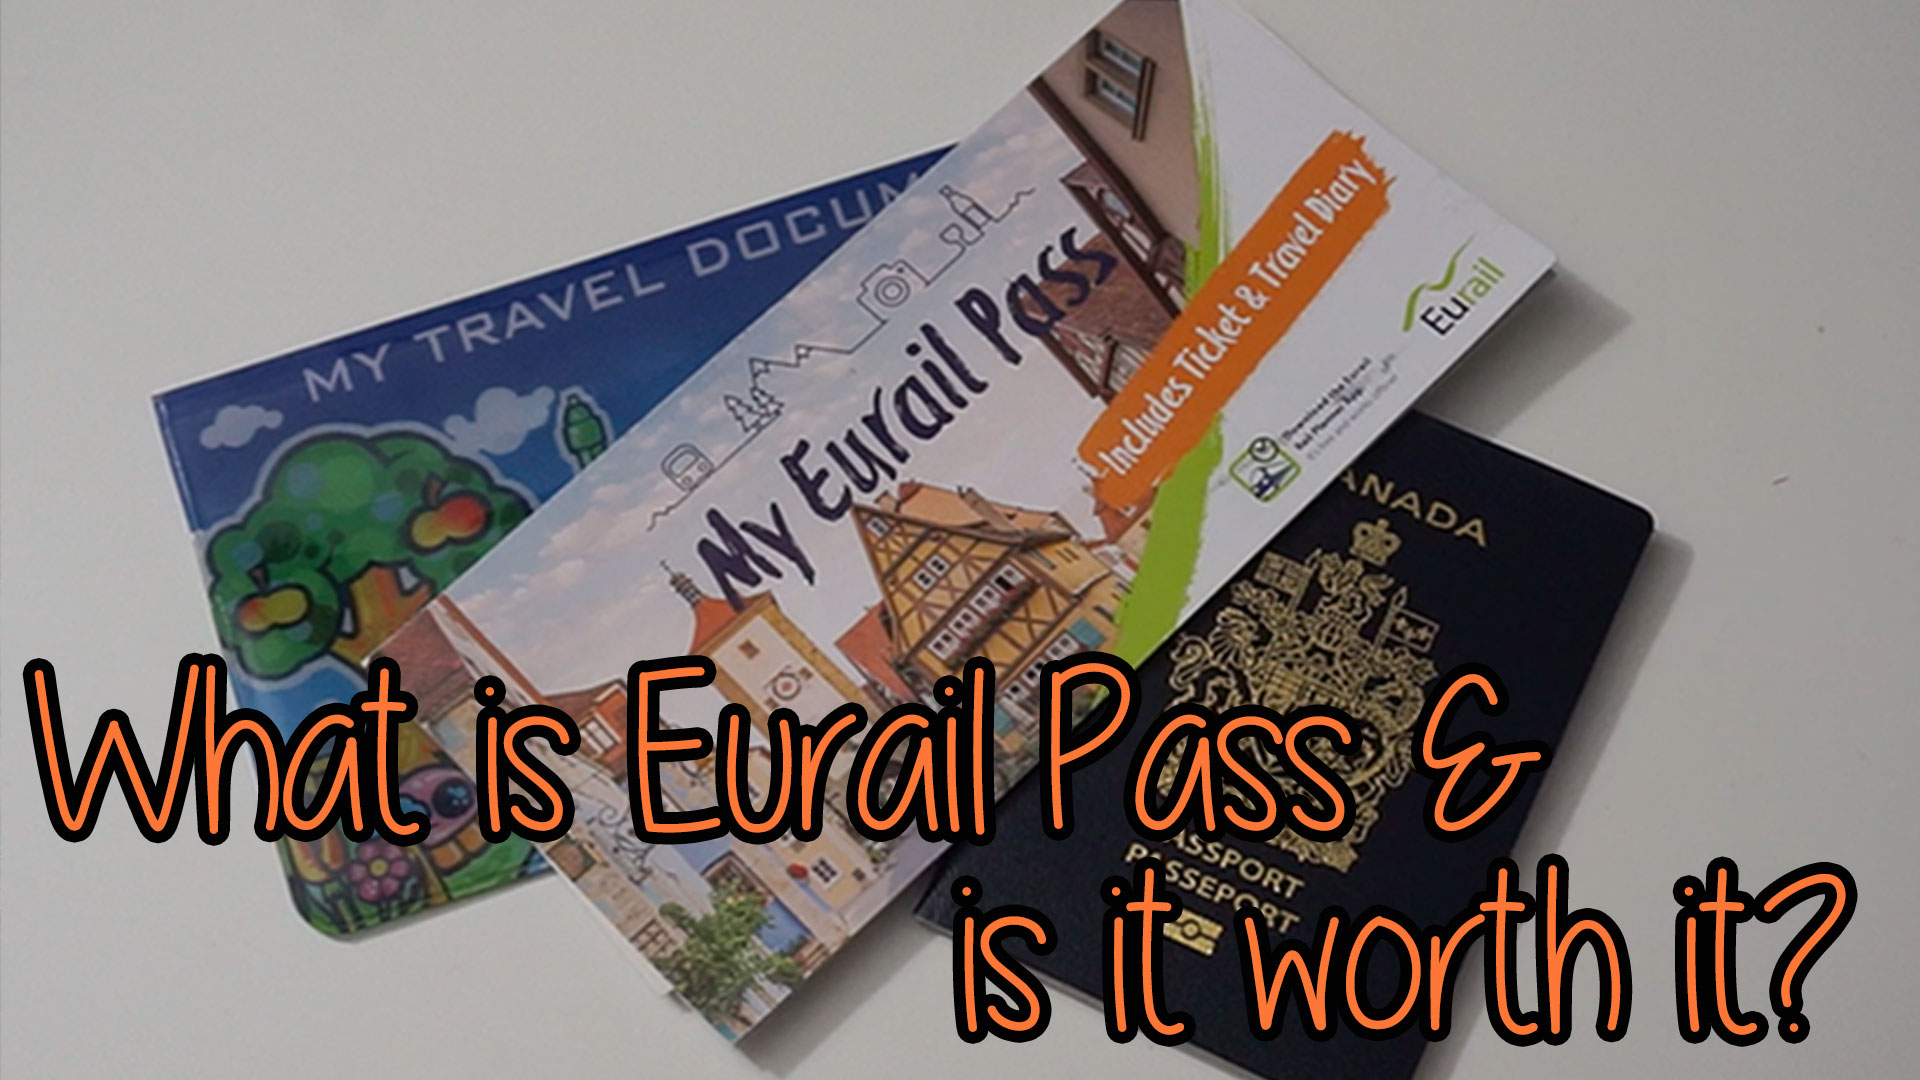 Eurail Pass Review - Is it worth it?